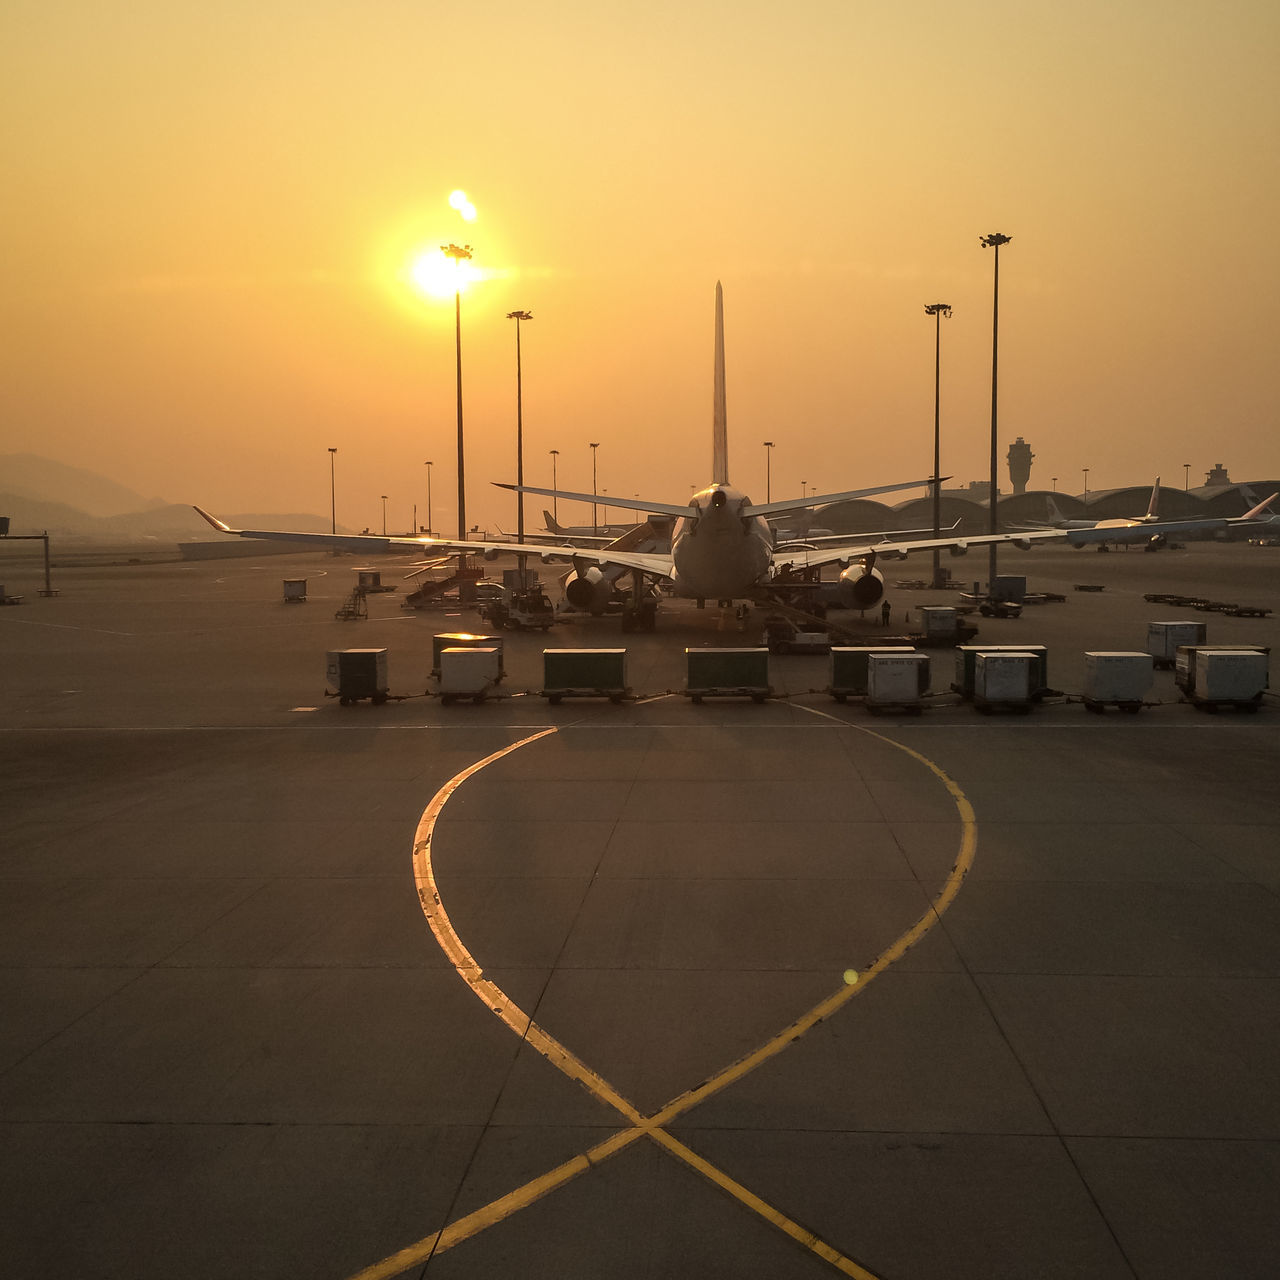 Aeroplane Aeroport Aircraft Airport Day End Of The Day Evening Evening Glow Go Away Journey Lines Nature No People Outdoors Plane Sky Sun Sunset Transportation Travel Traveling Vacation Vacation Time